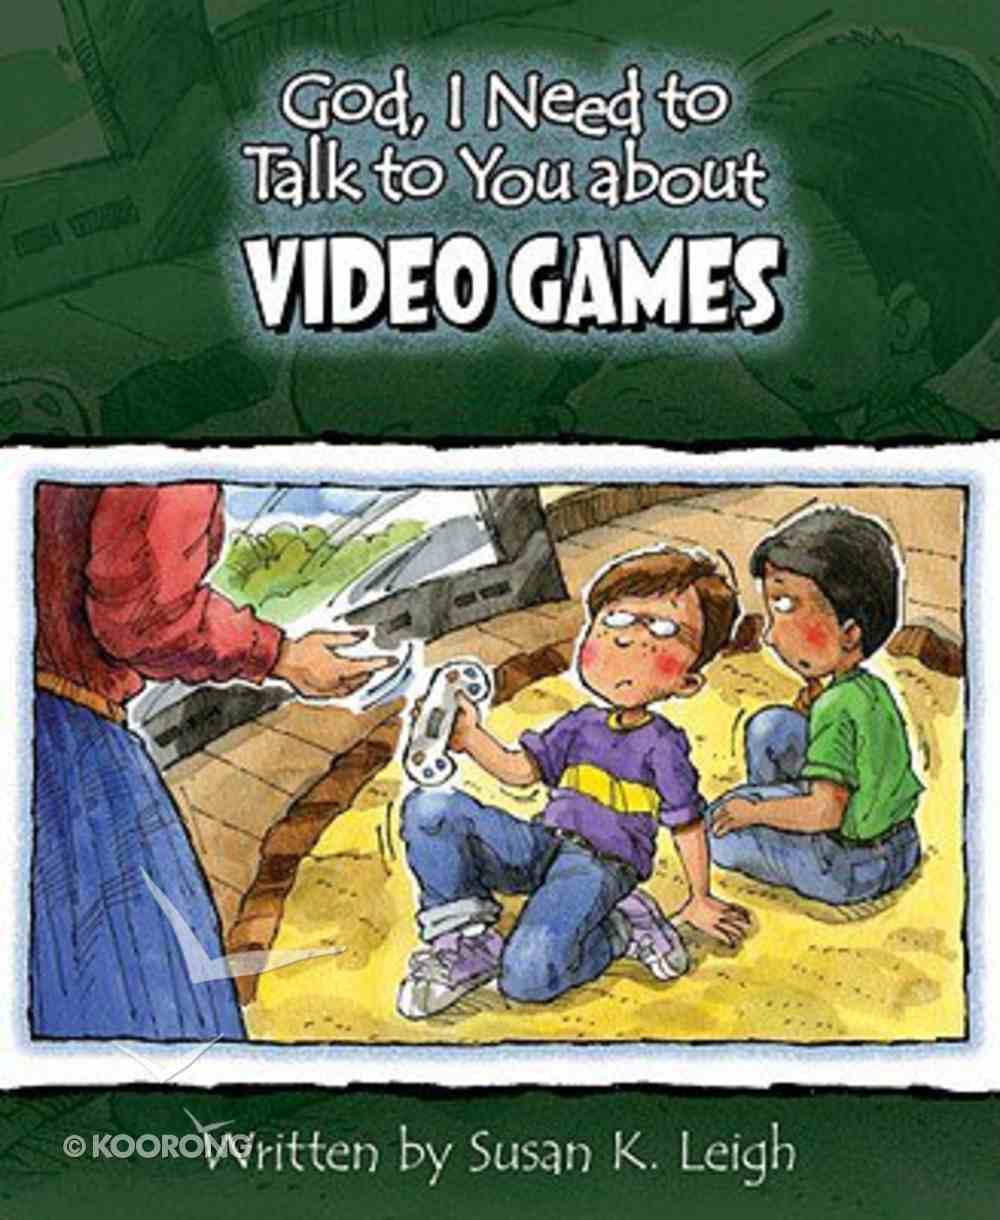 Video Games (God, I Need To Talk To You About Series) Paperback